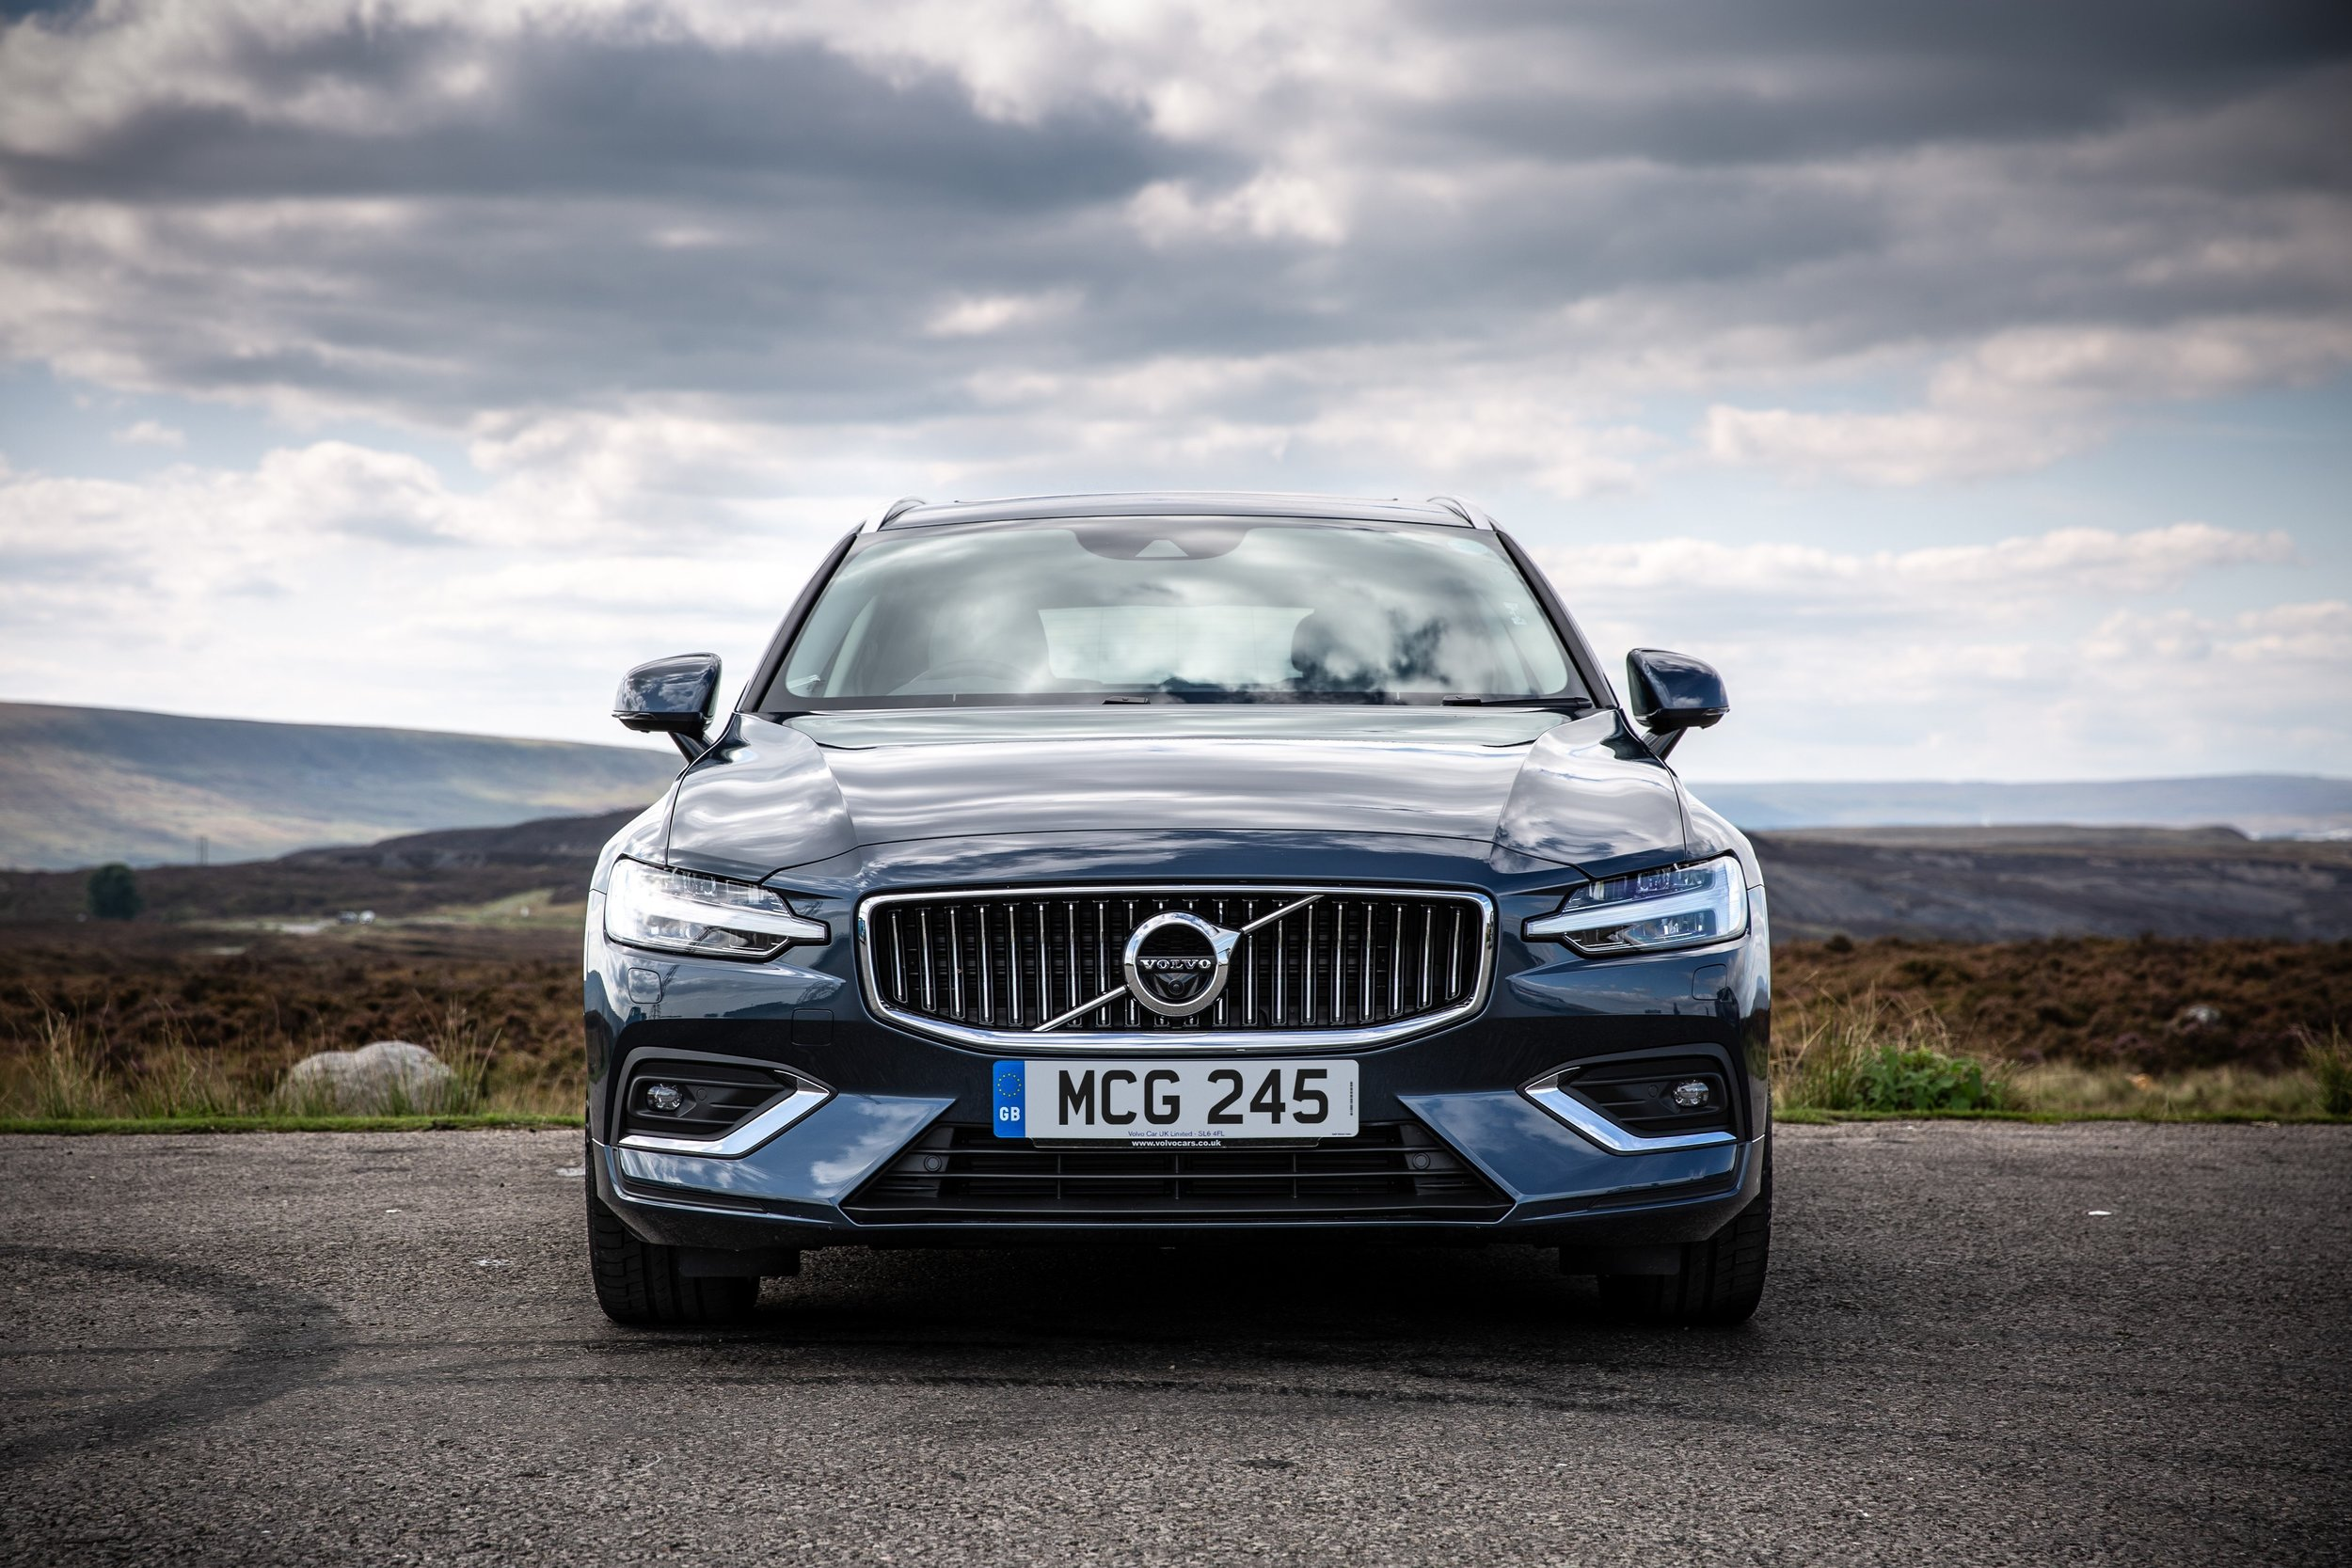 volvo-v60-regalmotion-regalautolease-14.jpg